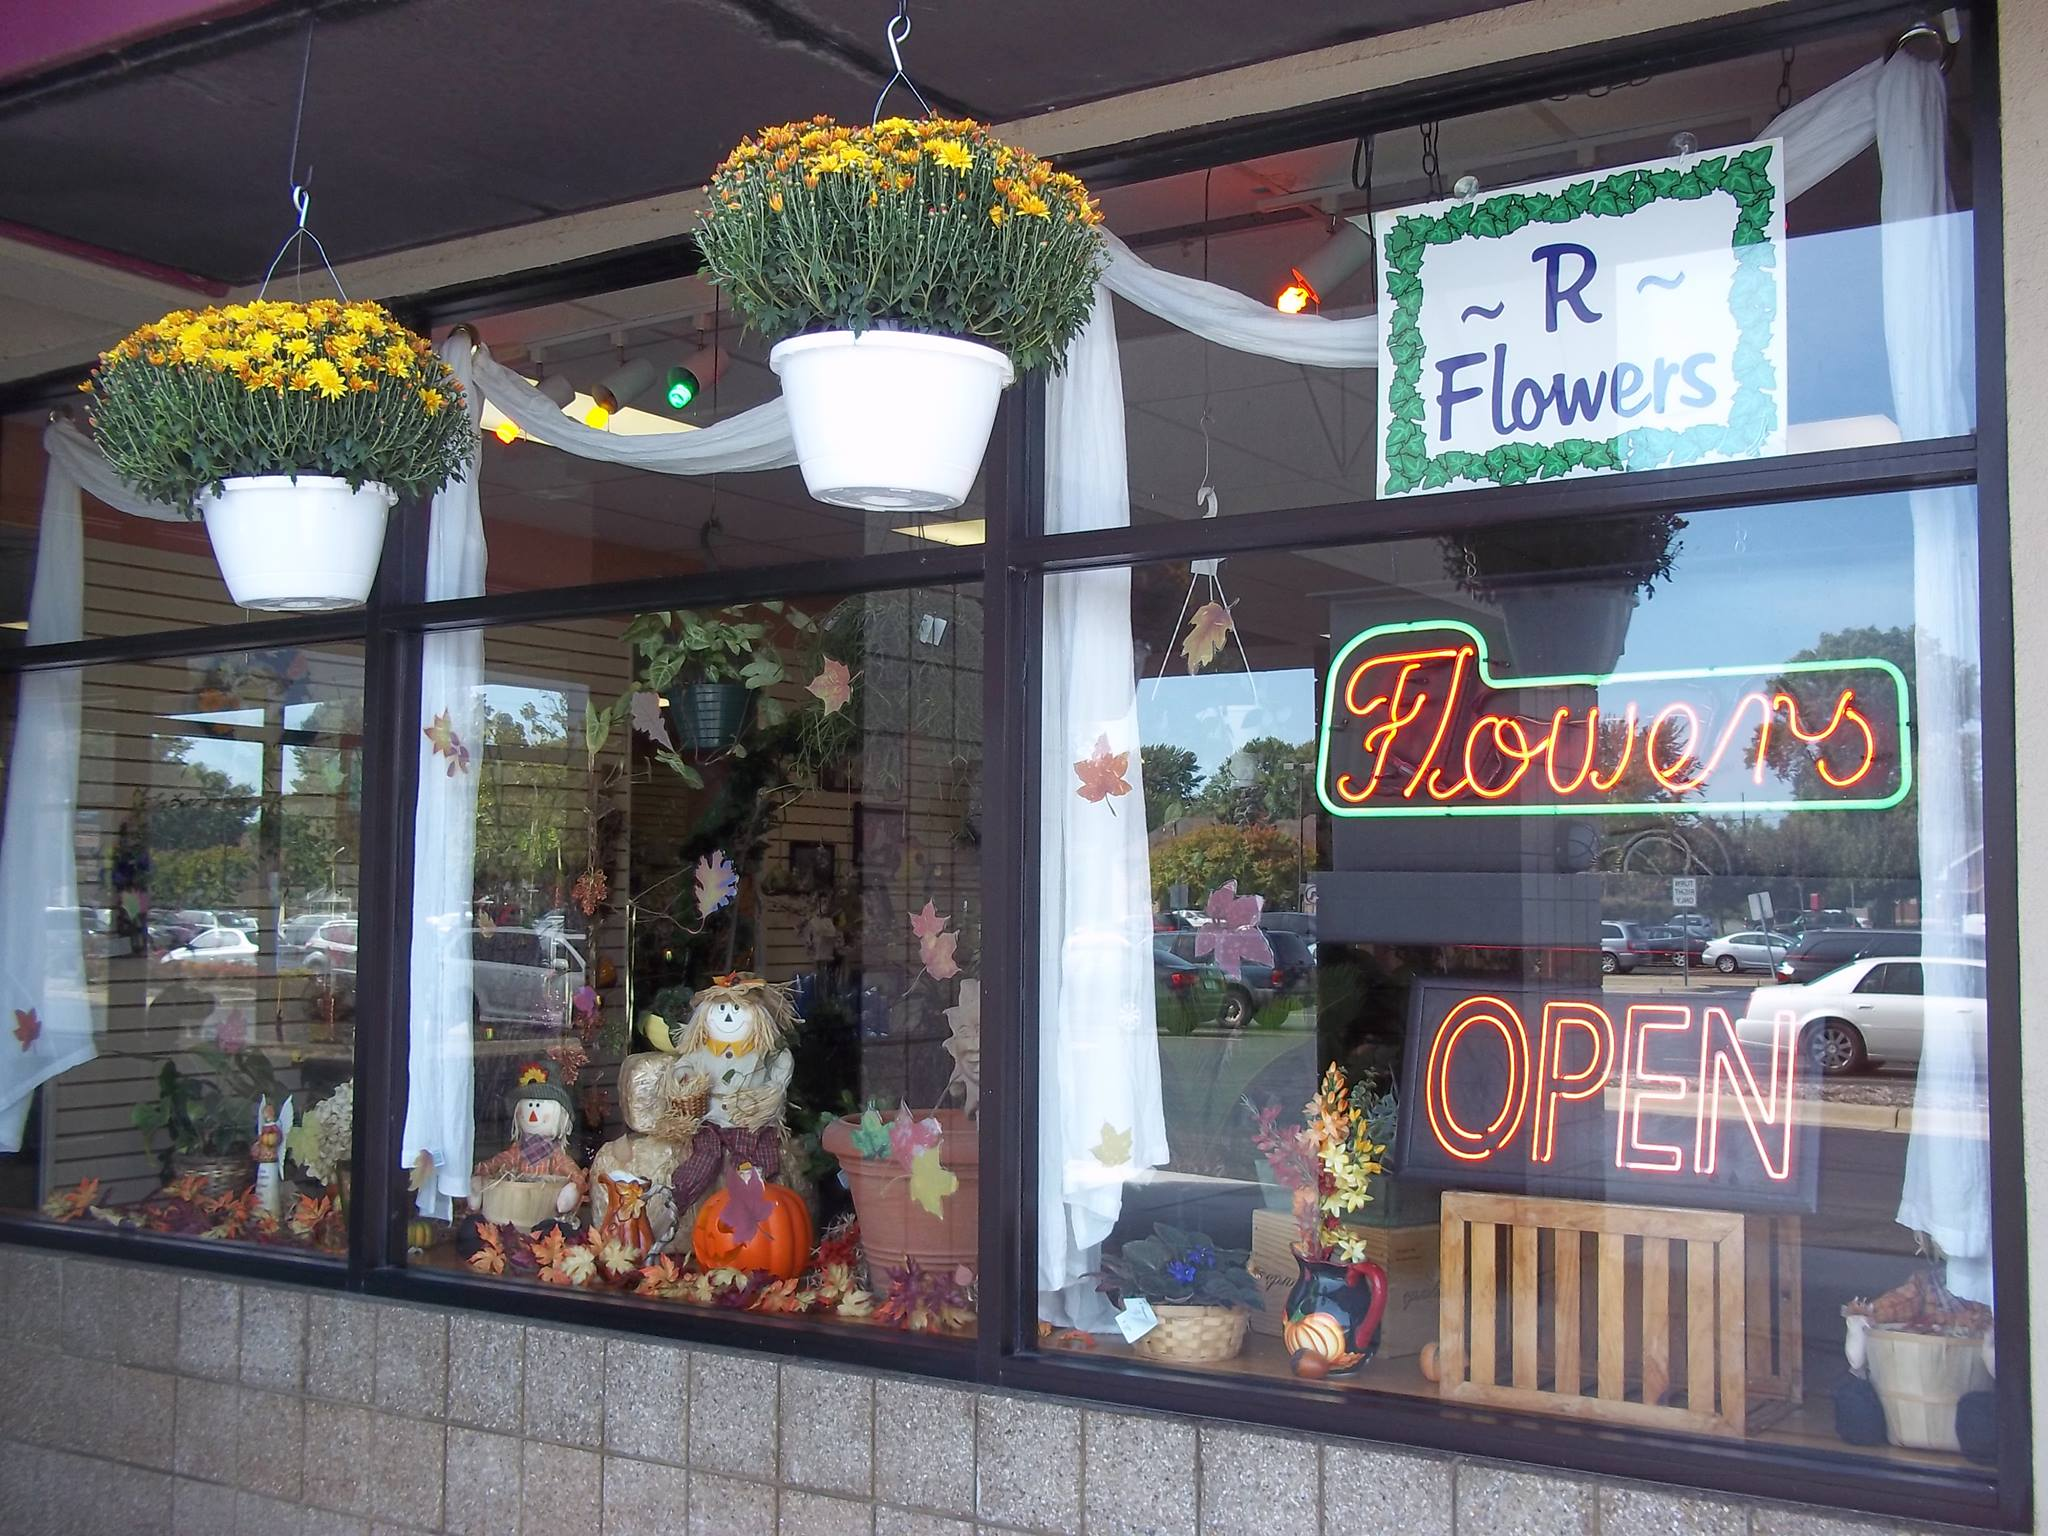 r flowers, harrison township